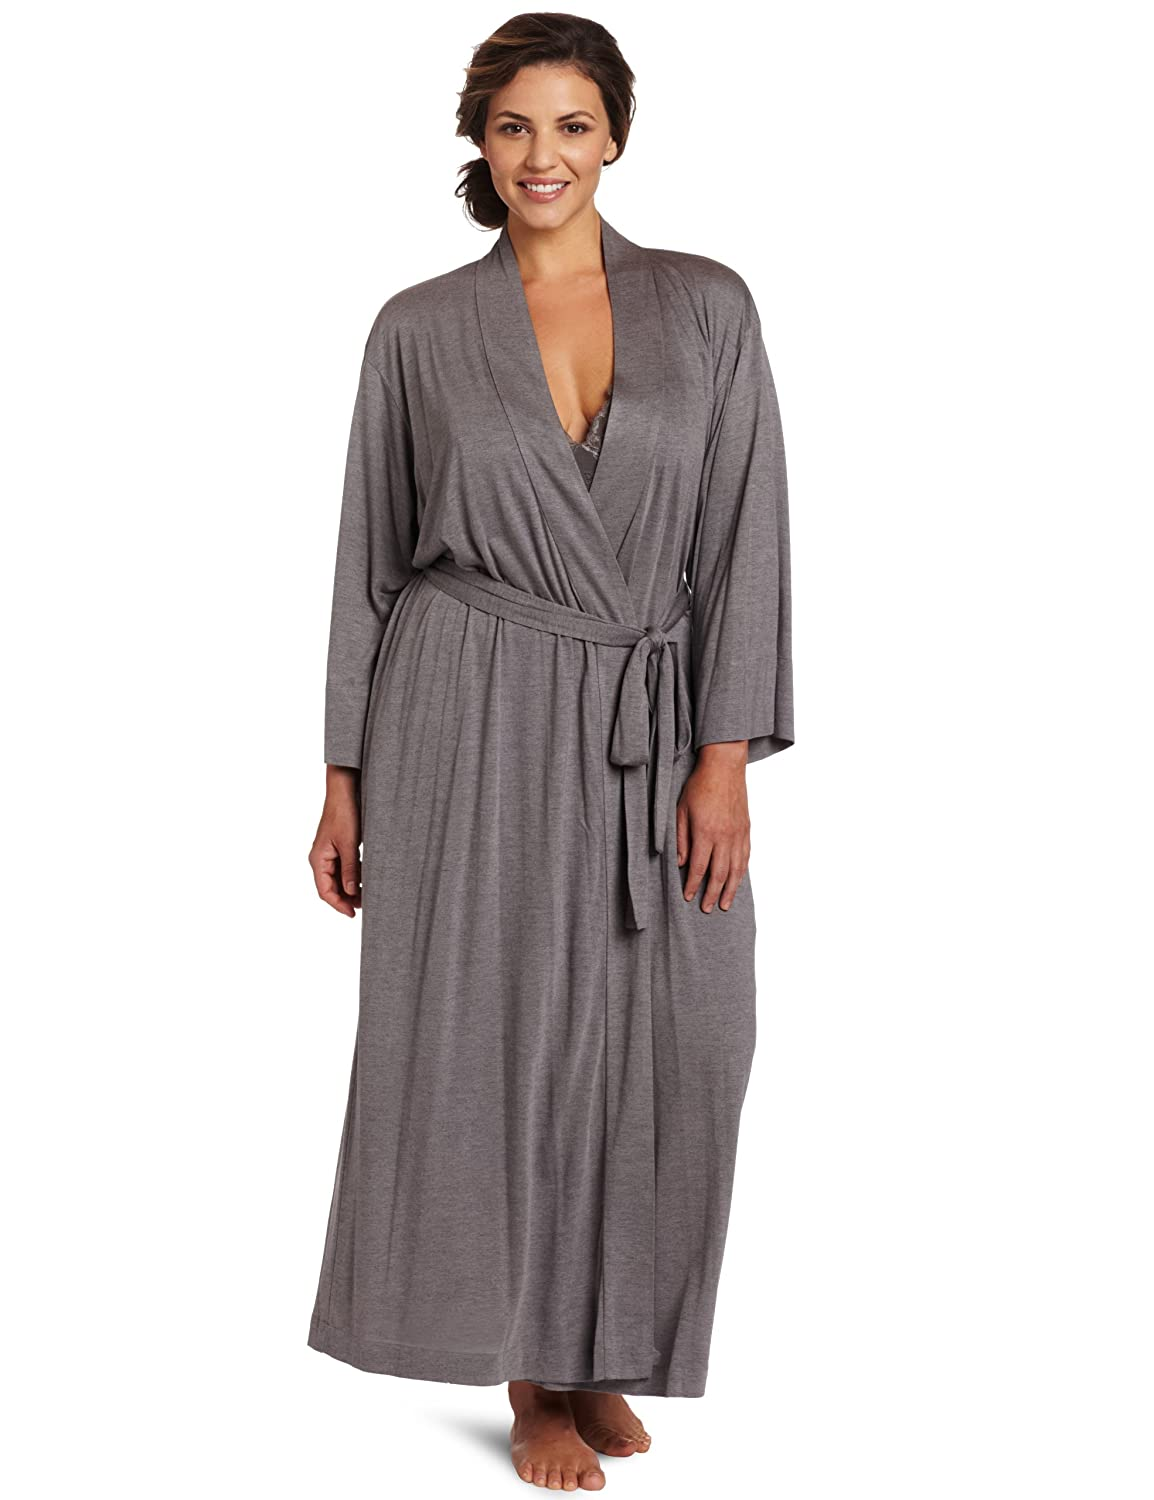 Natori Women's Plus-Size Shangri-La Robe Plus Natori Women's Sleepwear S88274X